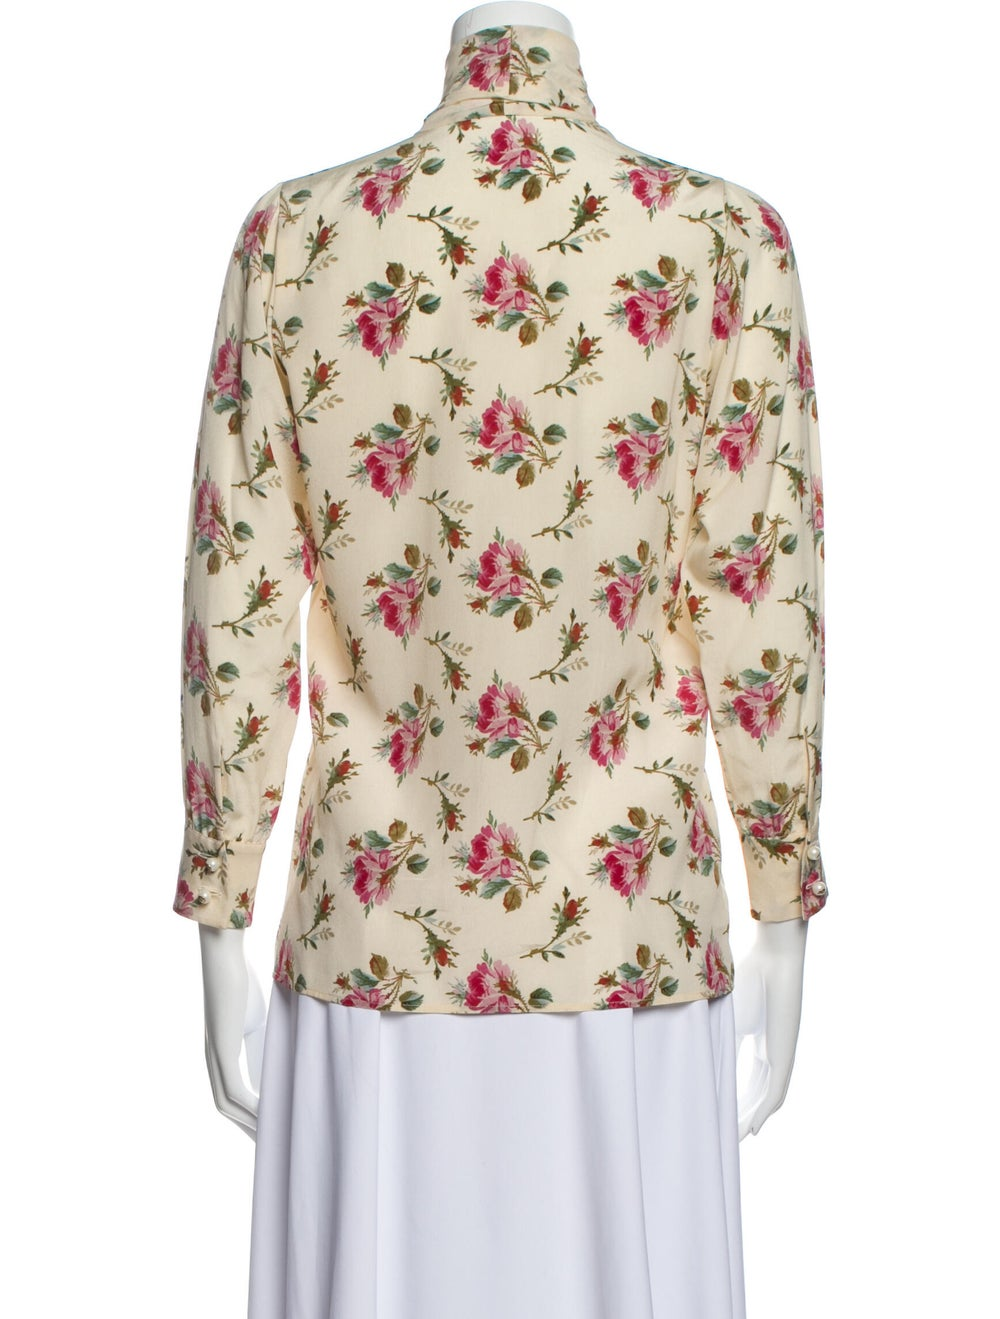 Gucci 2017 Floral Print Silk Blouse w/ Tags - image 3